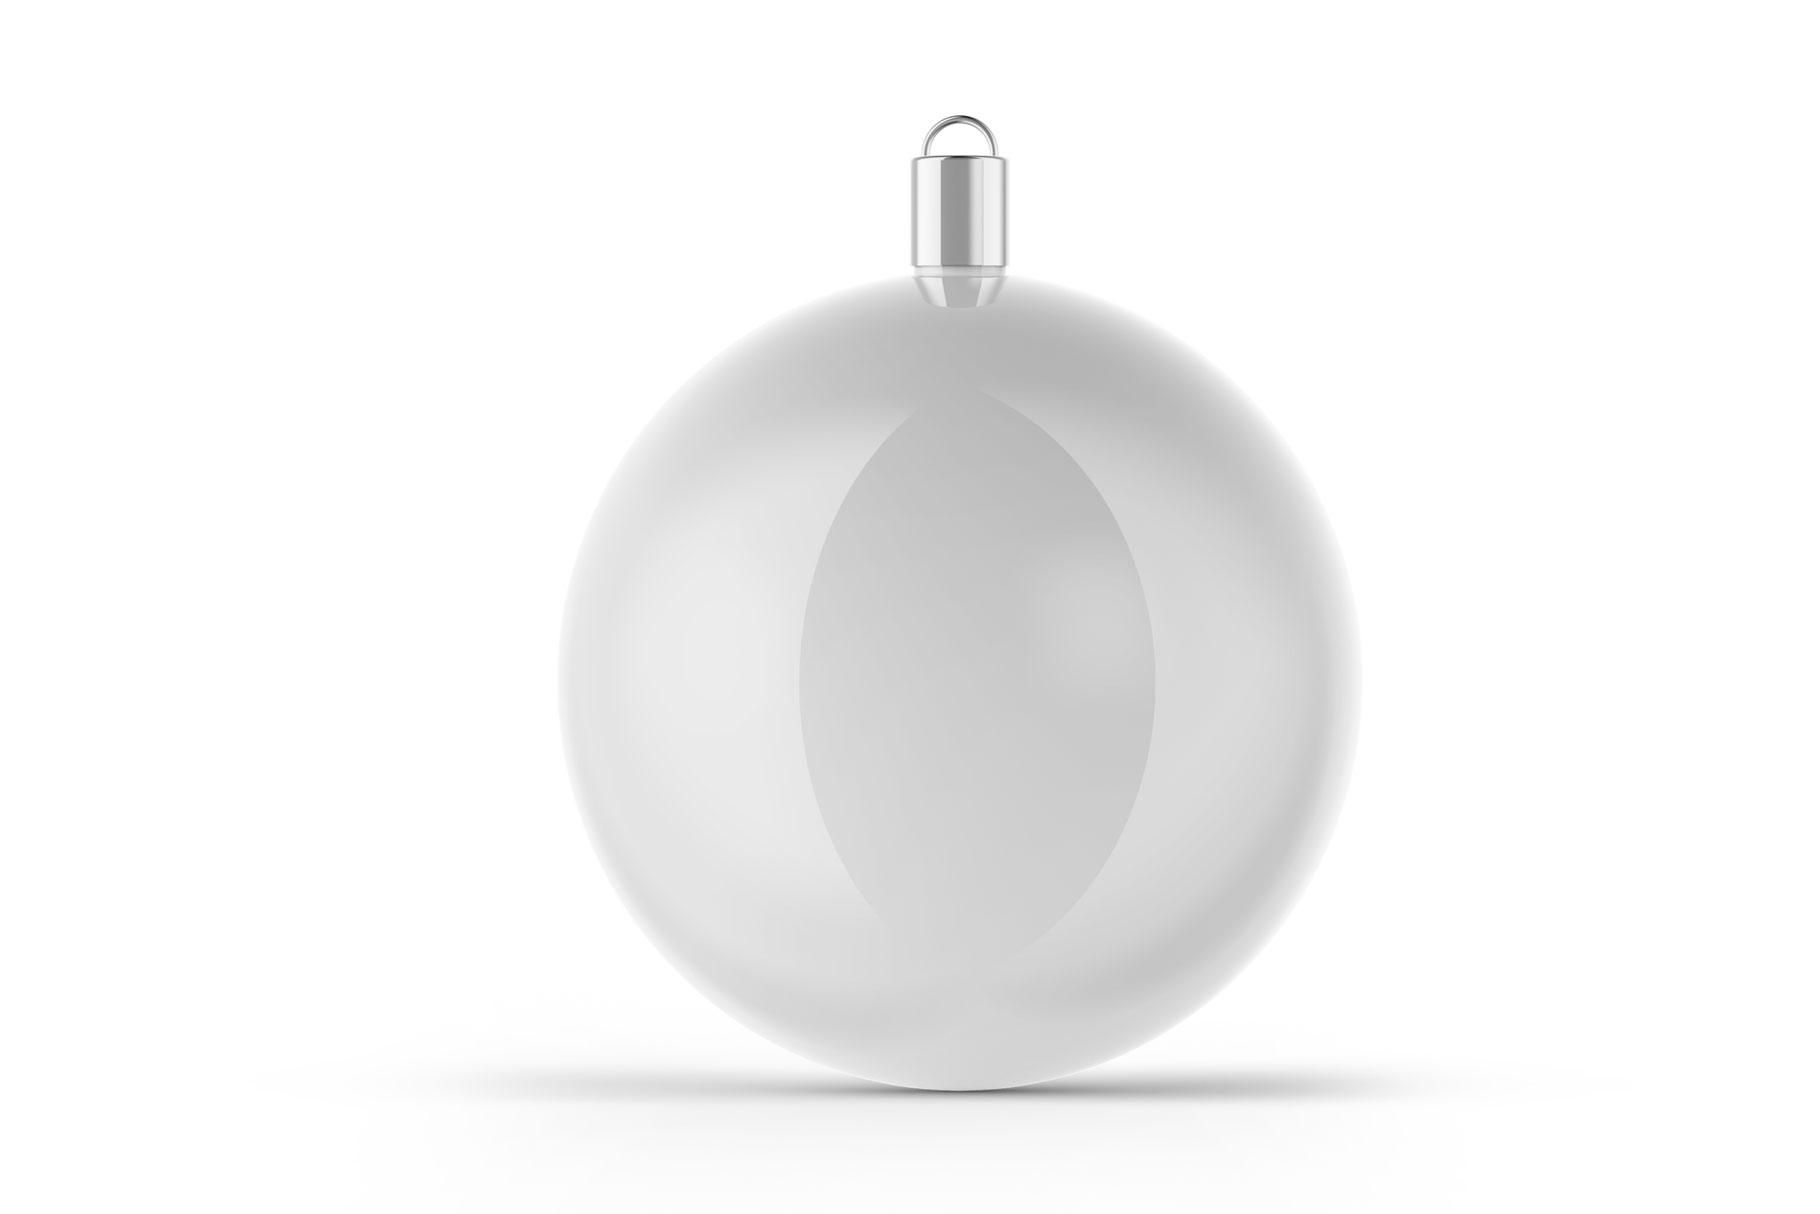 Glossy Christmas Ball Mockup example image 3